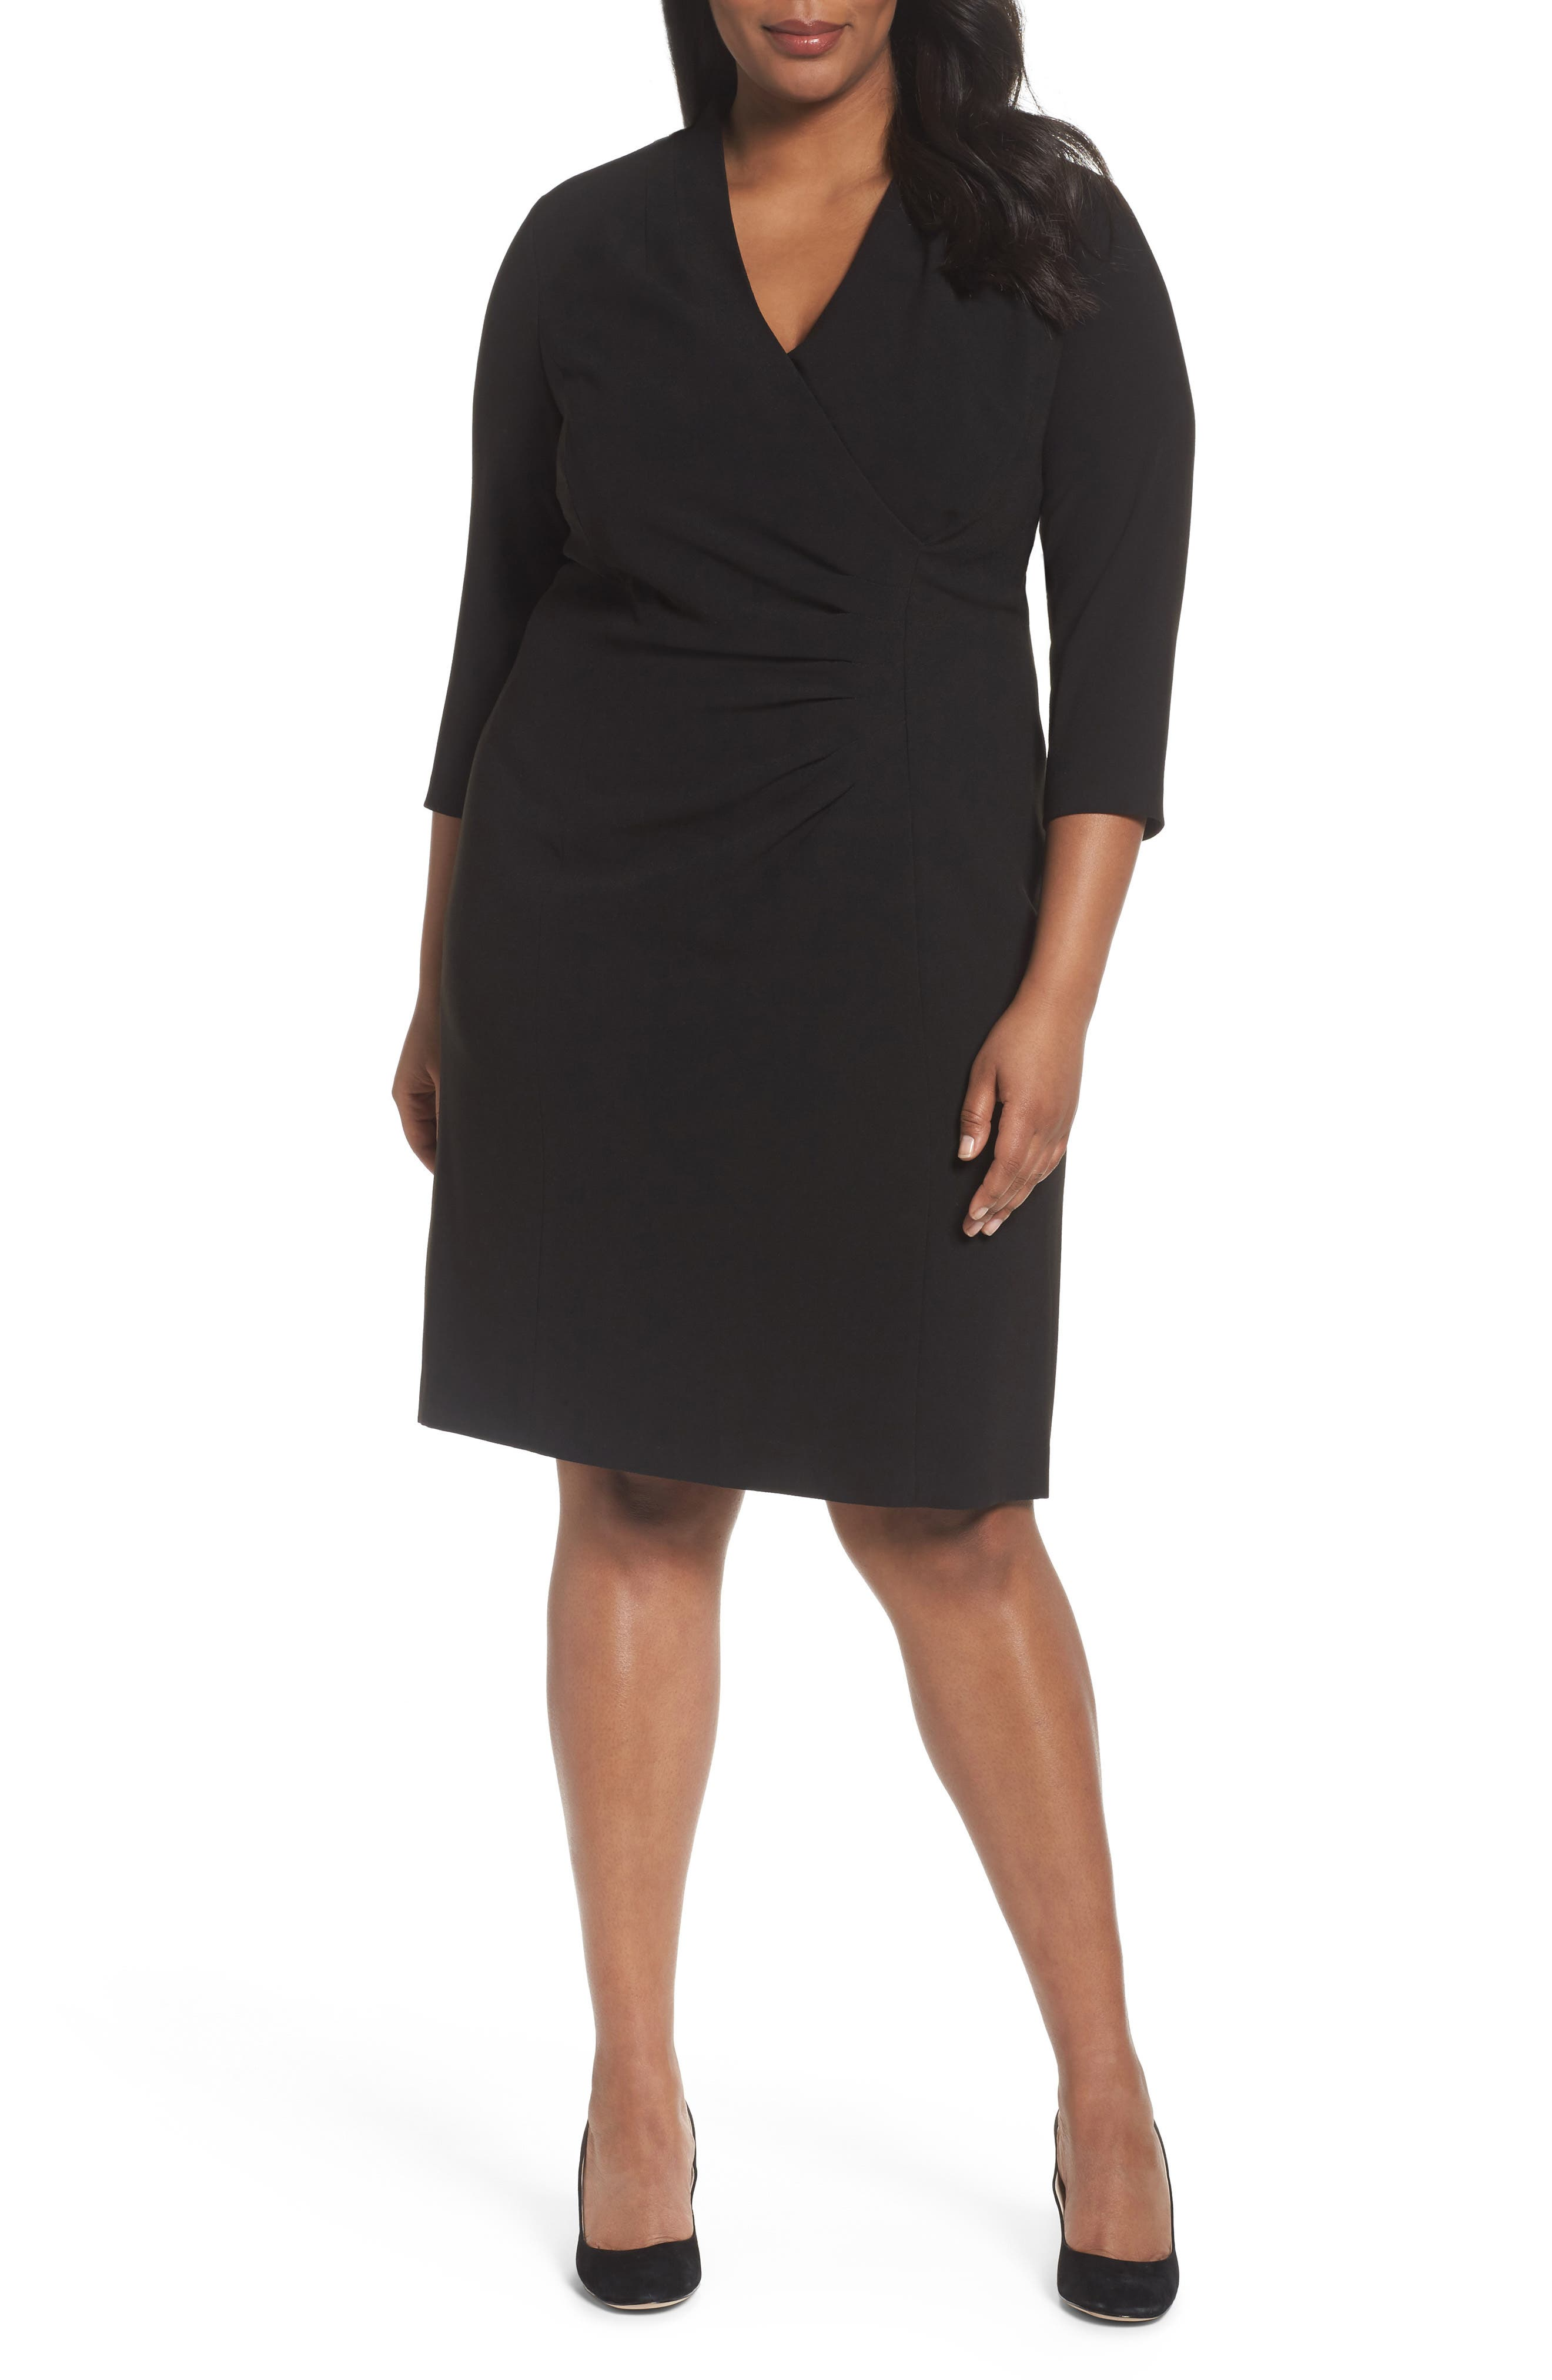 Tahari Side Pleat Crepe Sheath Dress (Plus Size)